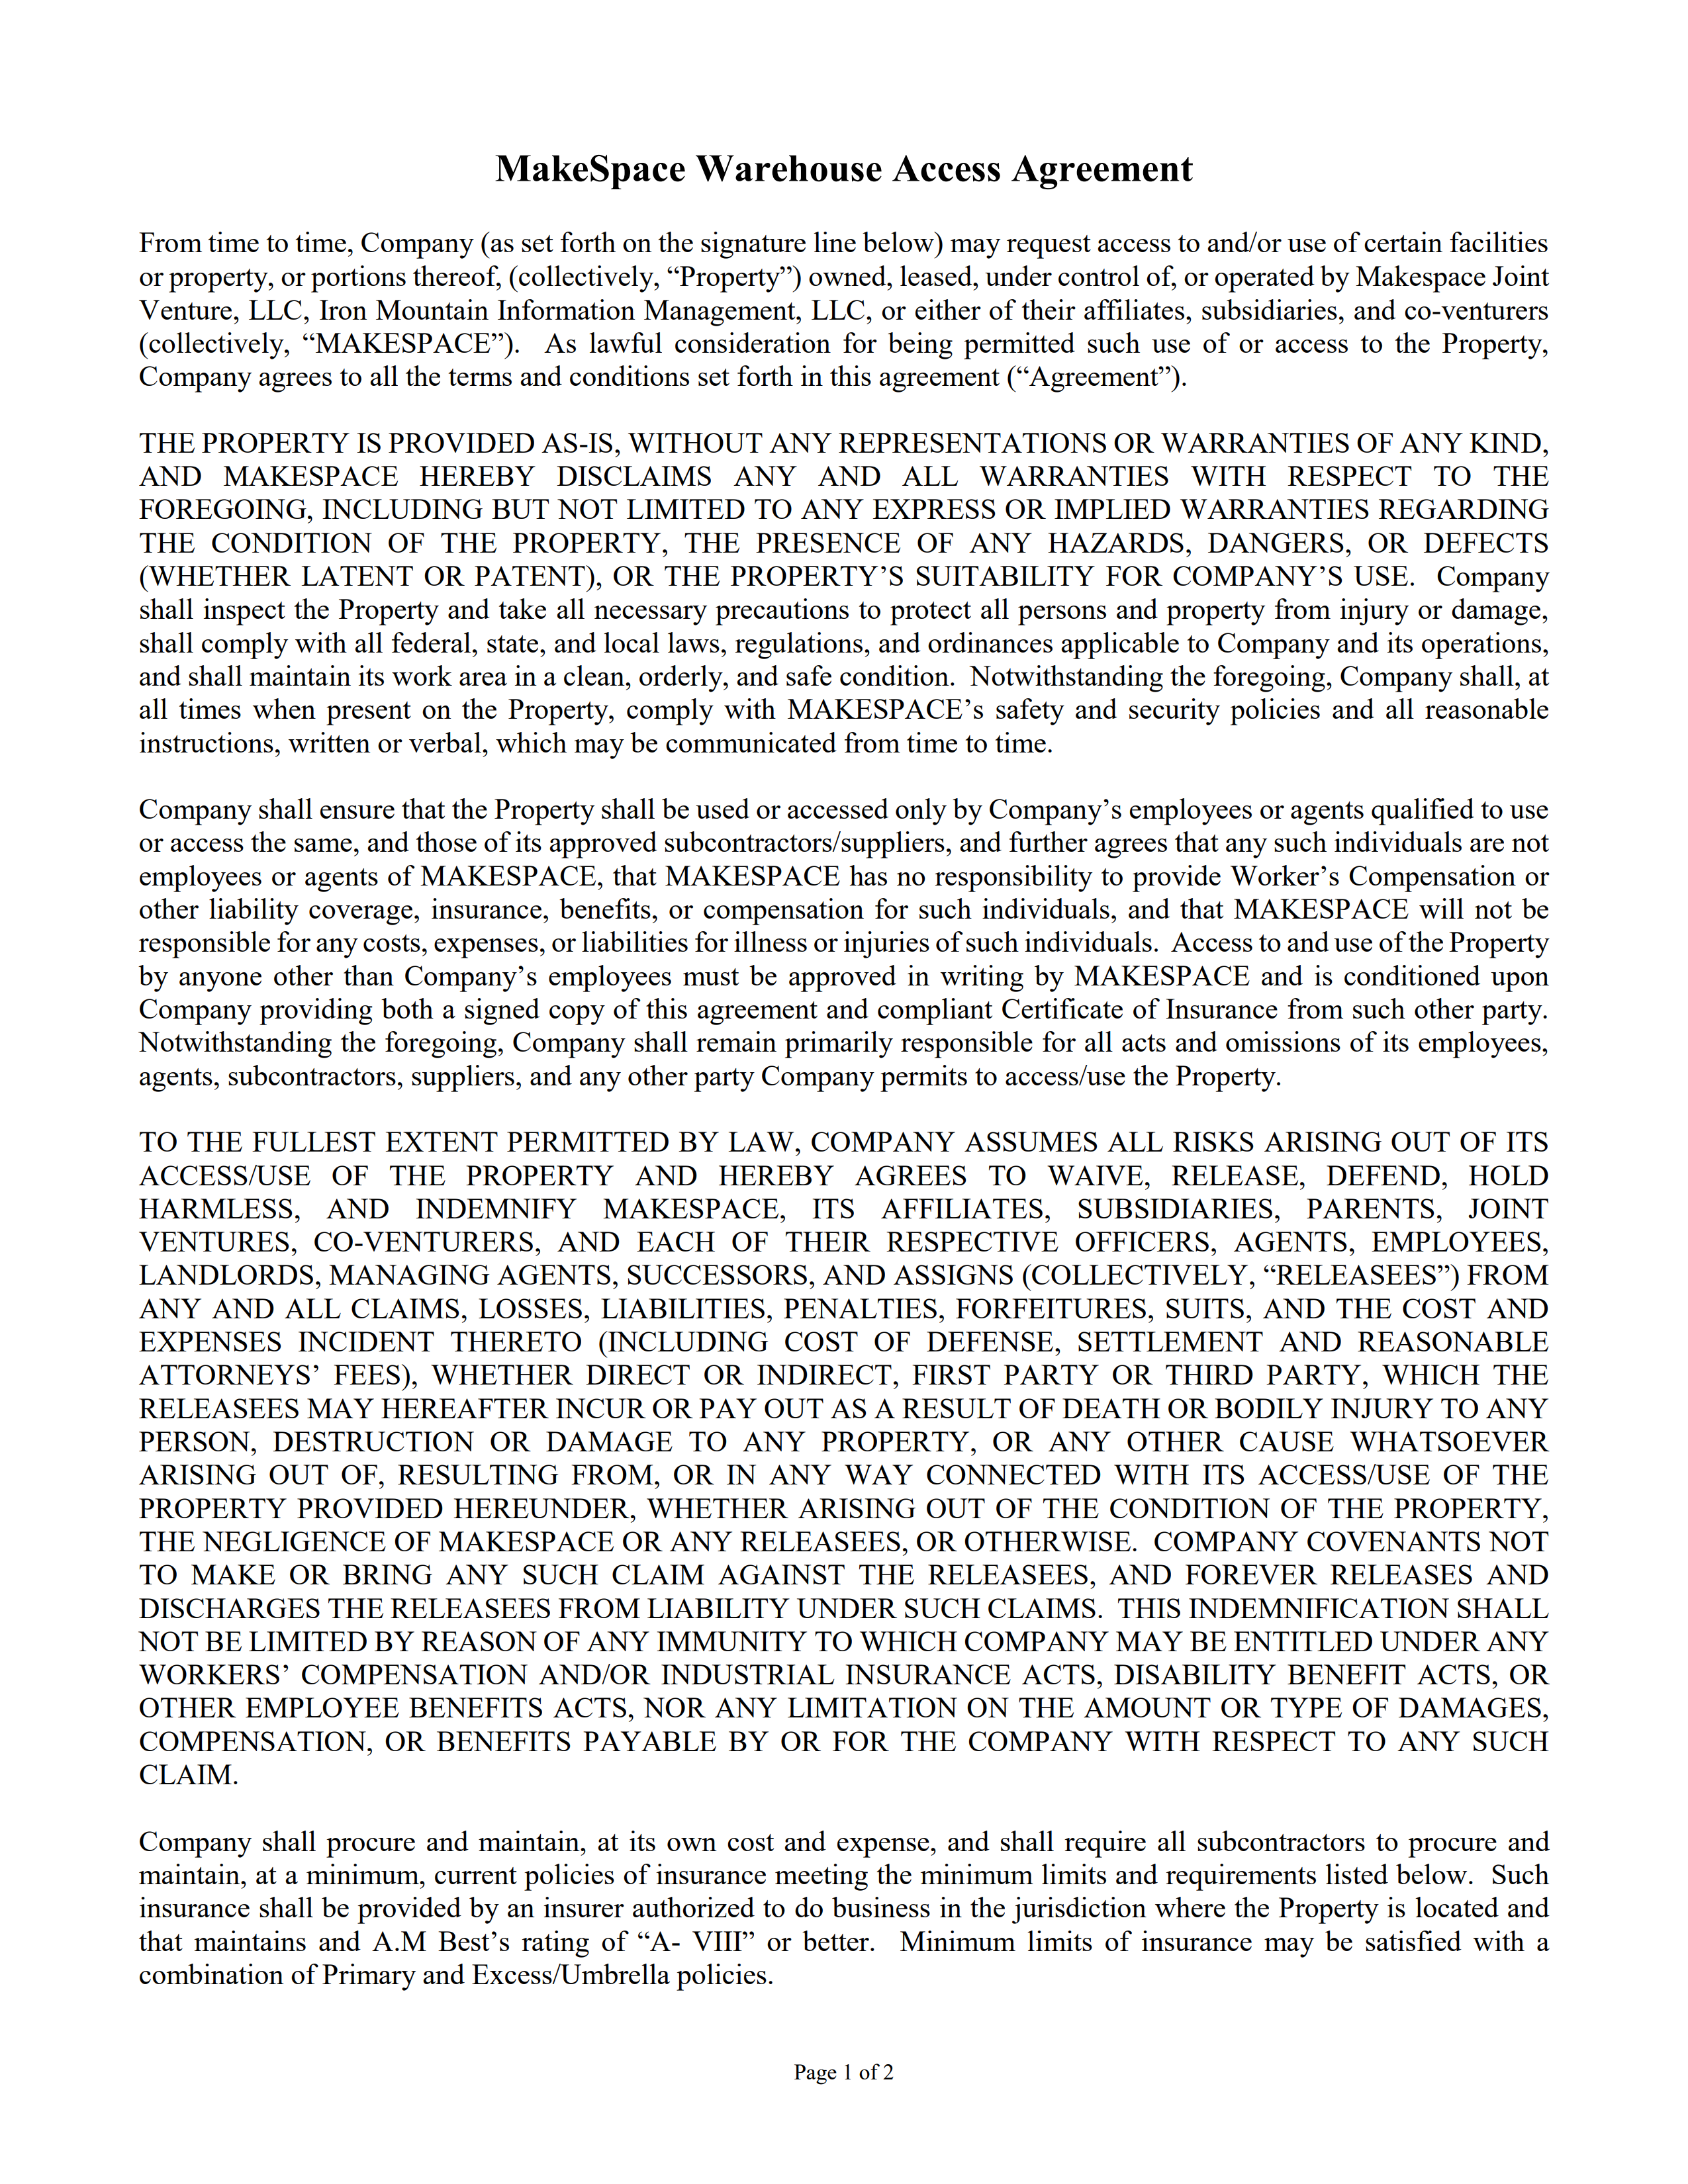 Makespace_-_Iron_Mountain_Facility_Access_Agreement__Company__2-20-20_FINAL_-_PAGE_1.png